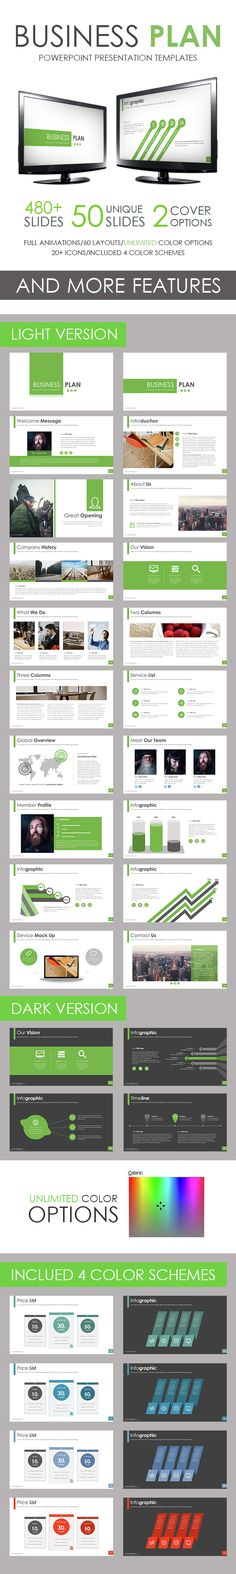 Business proposal powerpoint template pinterest business business plan powerpoint template cheaphphosting